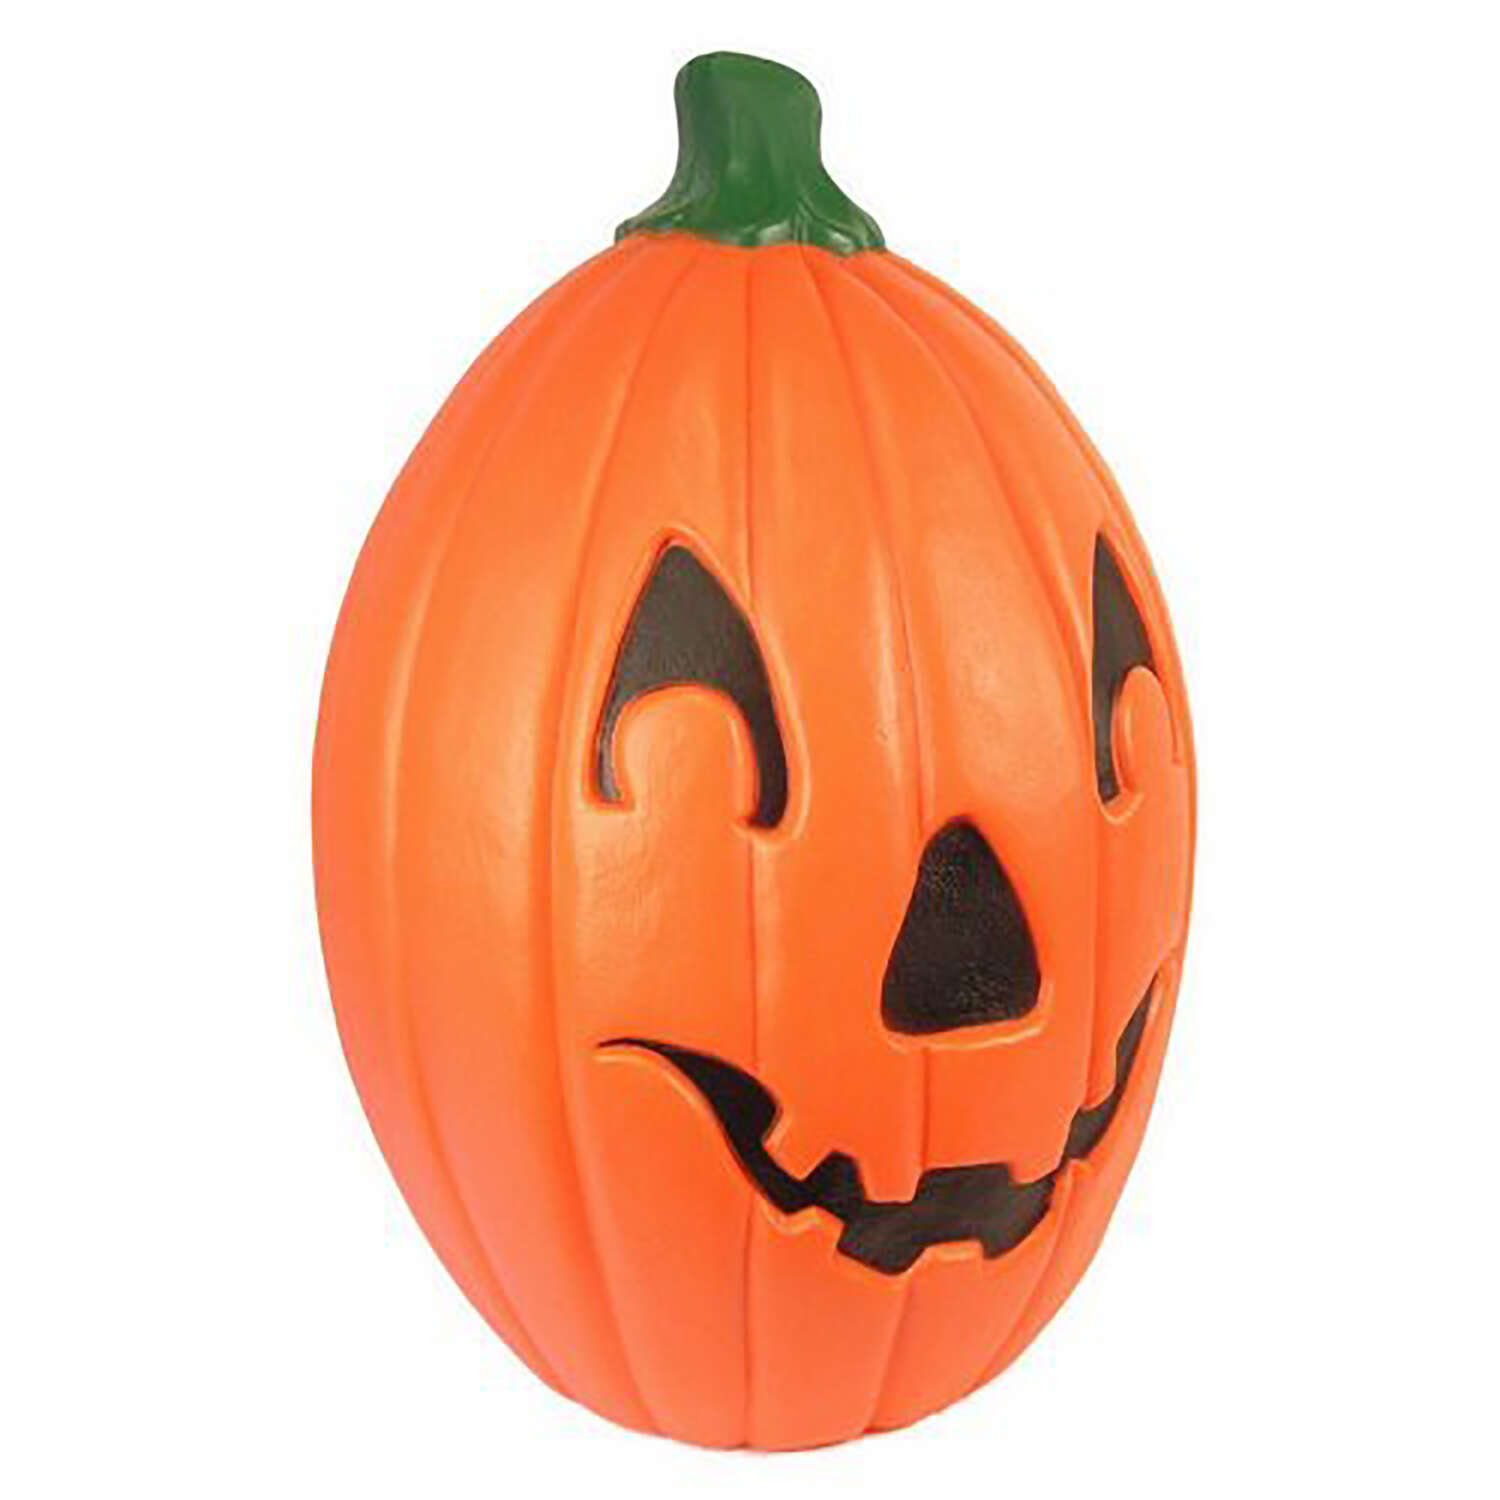 Union Products Pumpkin Blow Mold Lighted Halloween